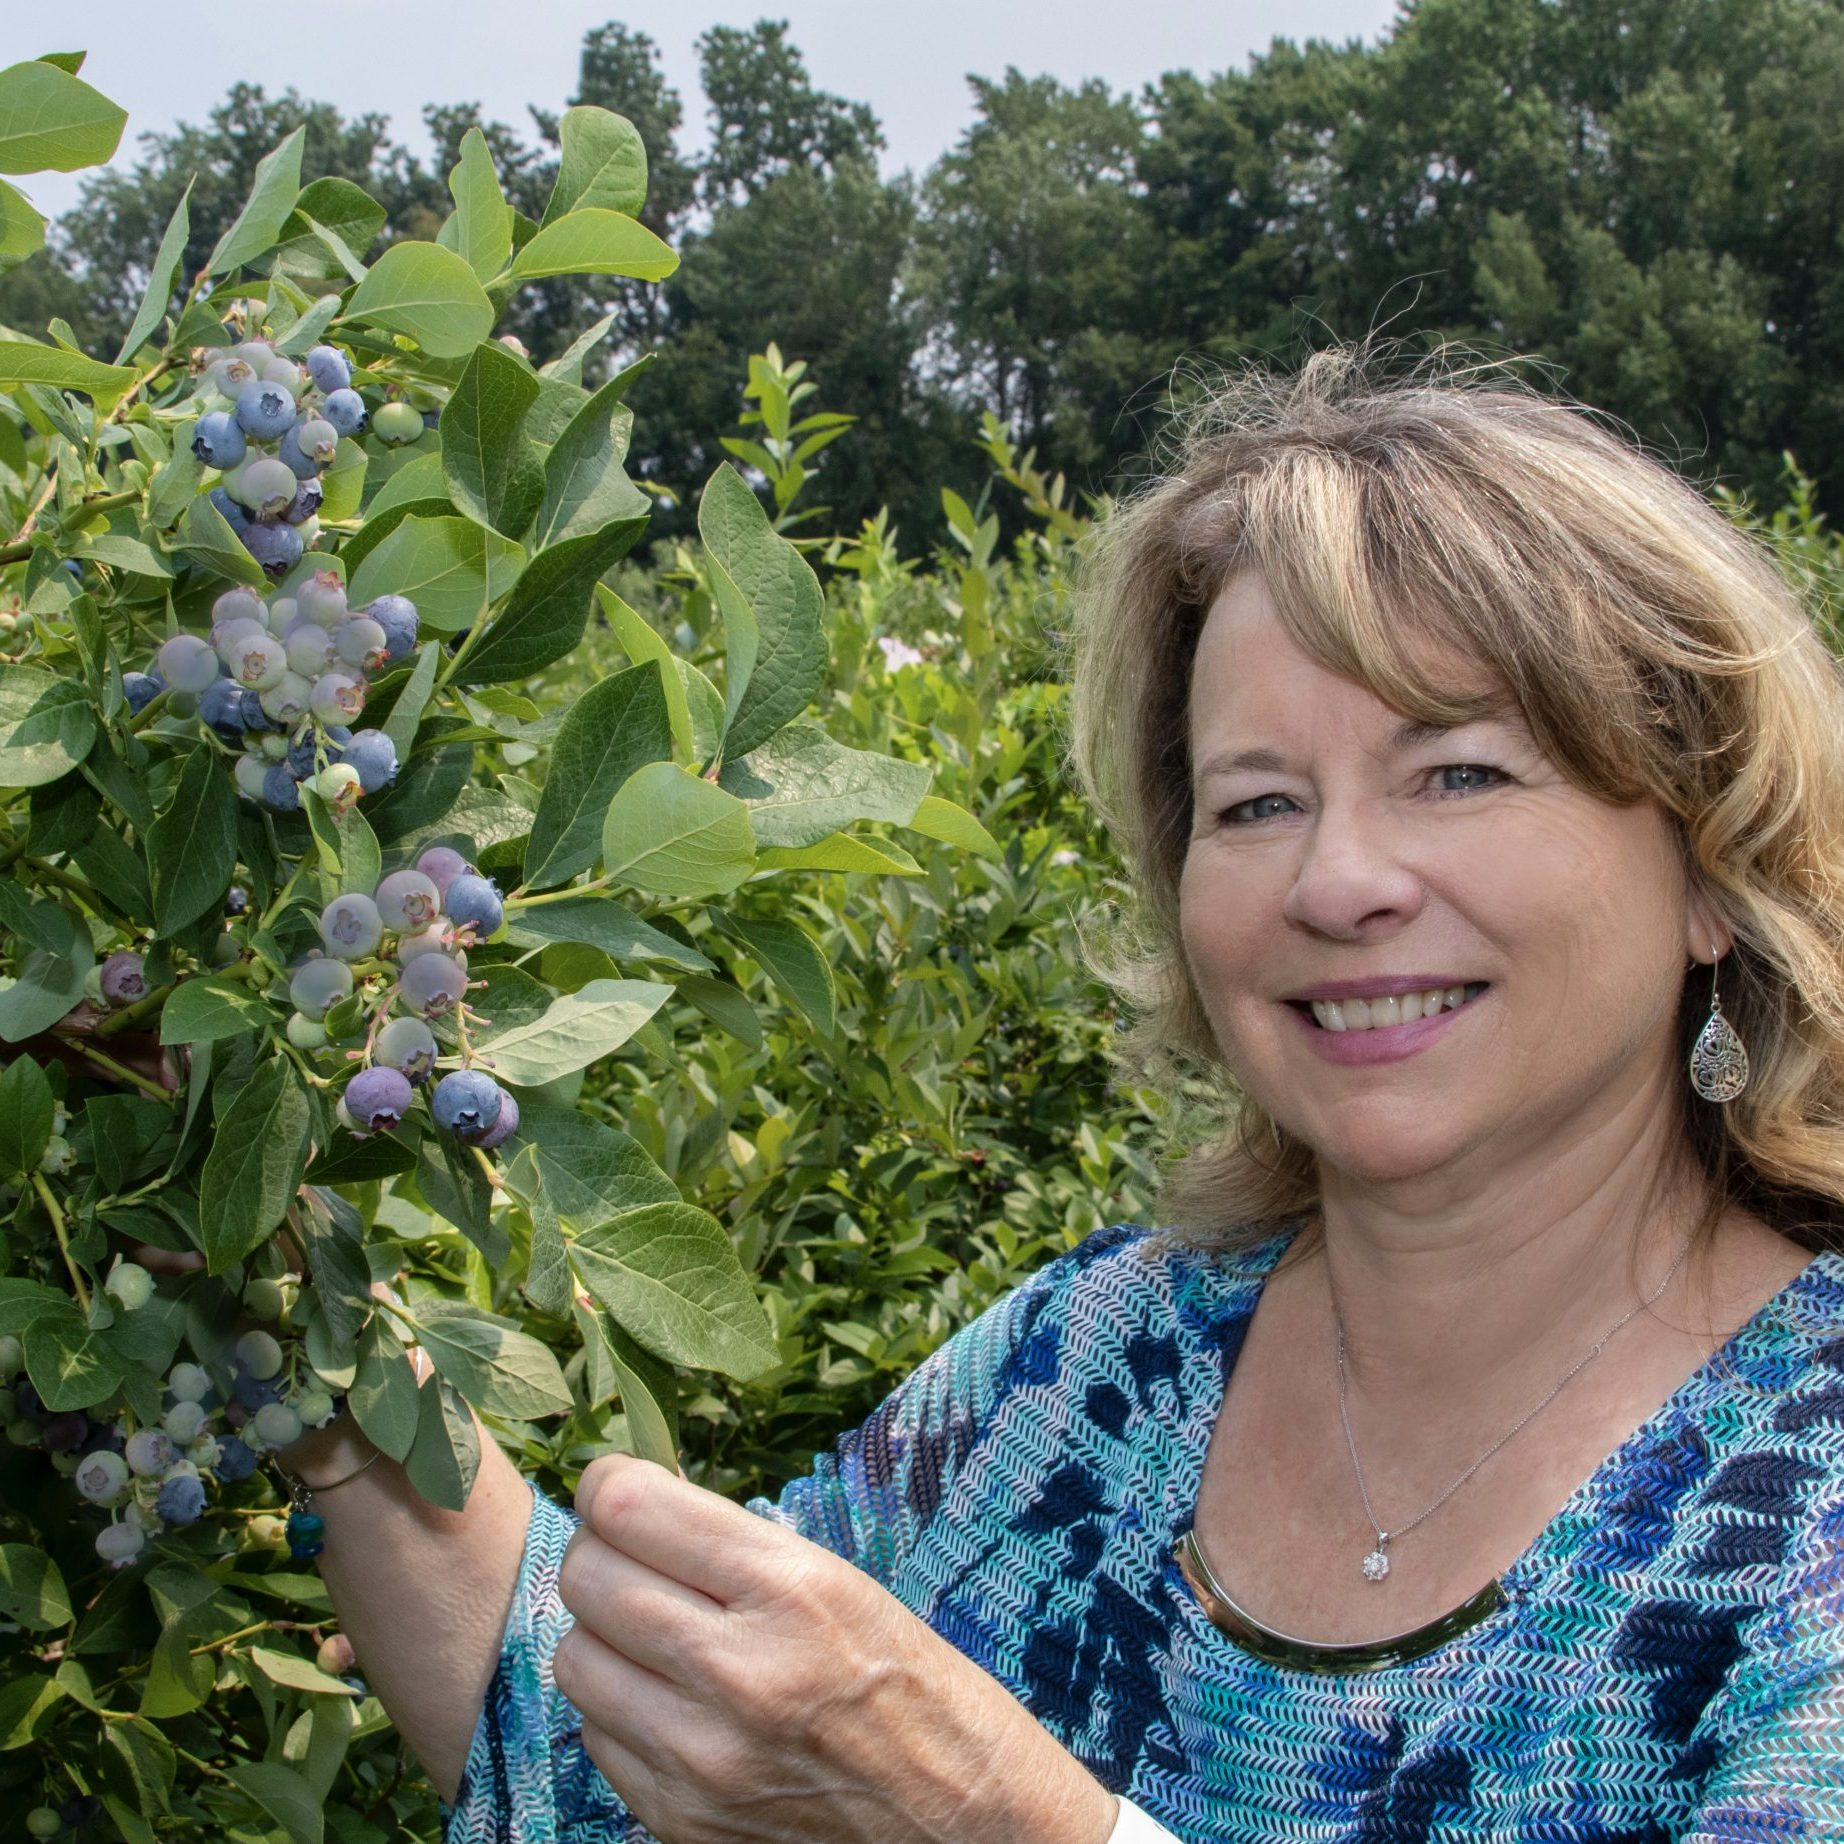 konnie-at-blueberry-field